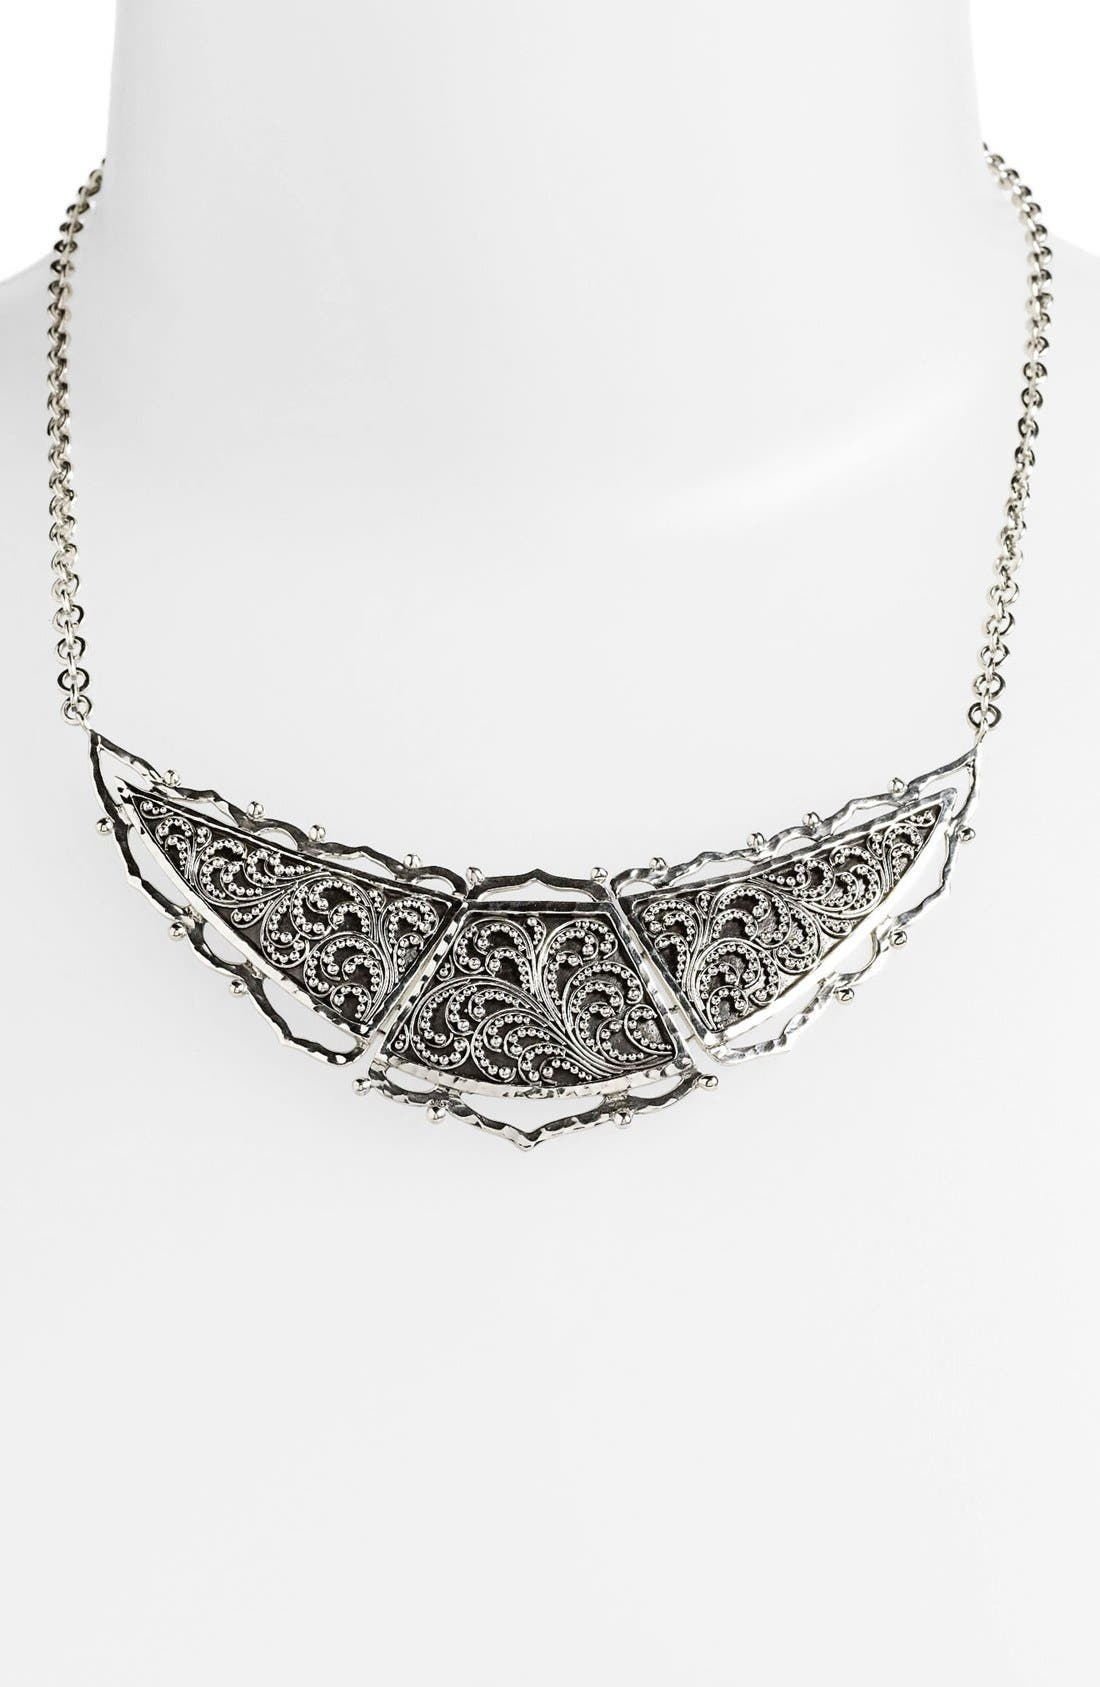 Alternate Image 1 Selected - Lois Hill Large Granulated Shield Collar Necklace